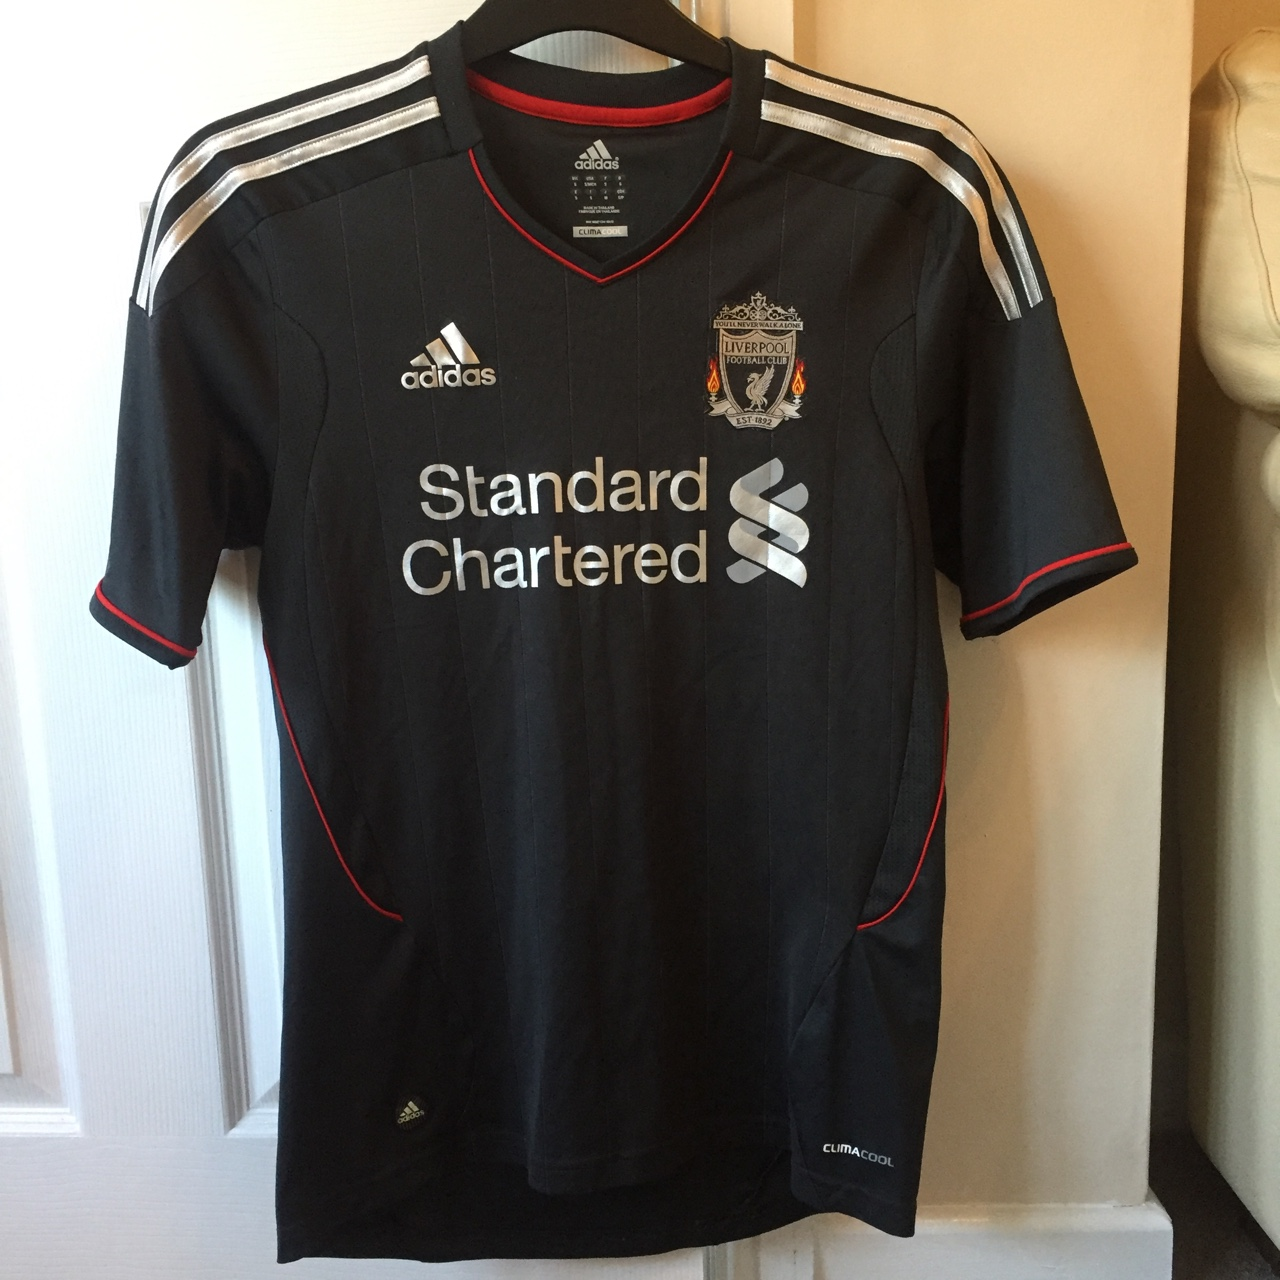 low priced 2d436 19ba6 Small size black and grey Liverpool FC away kit... - Depop